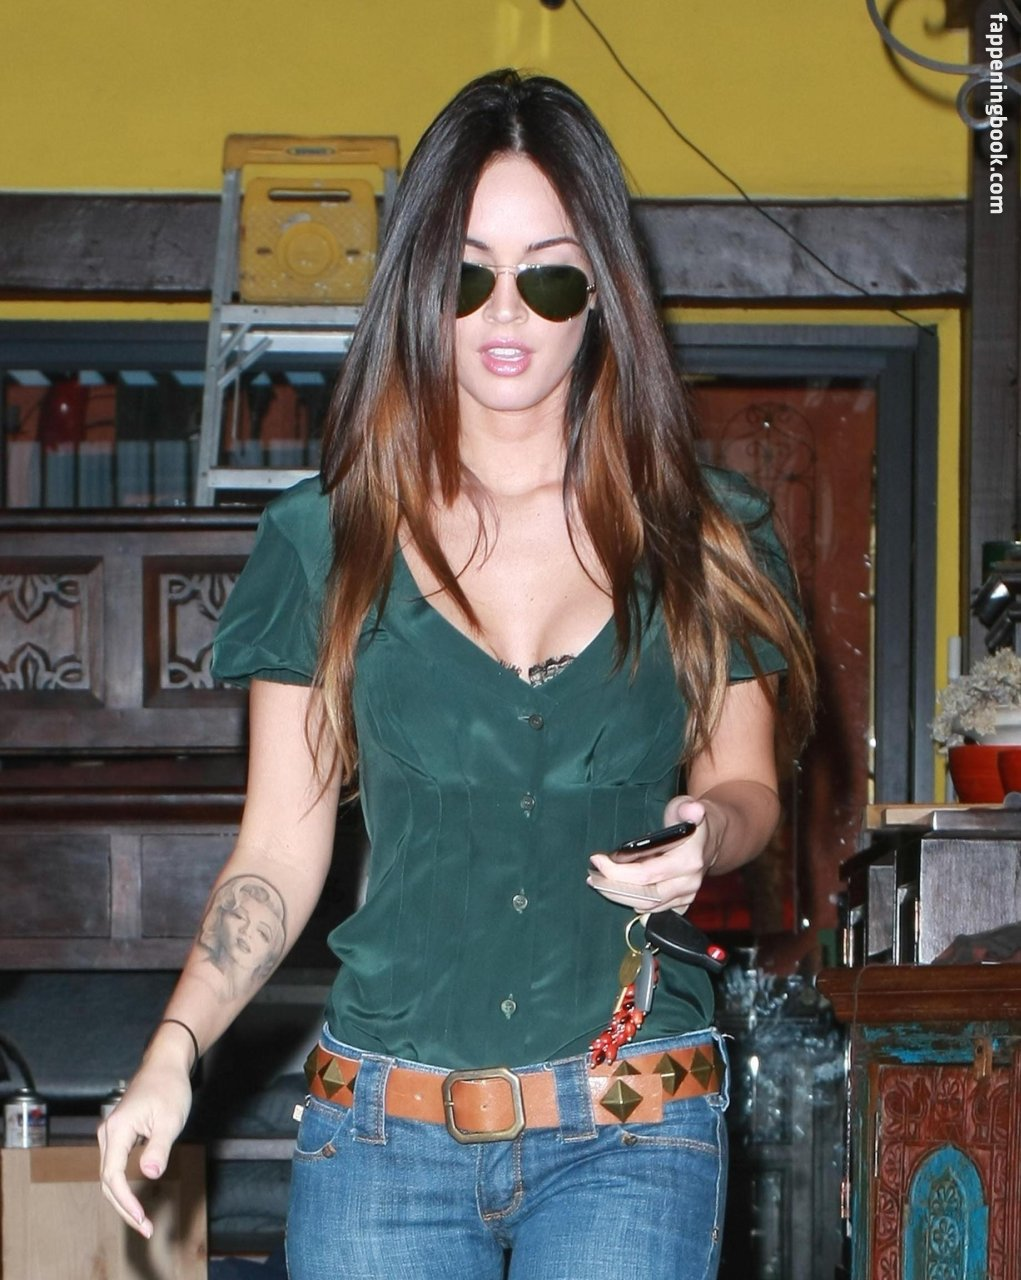 Megan Fox Nude, Sexy, The Fappening, Uncensored - Photo